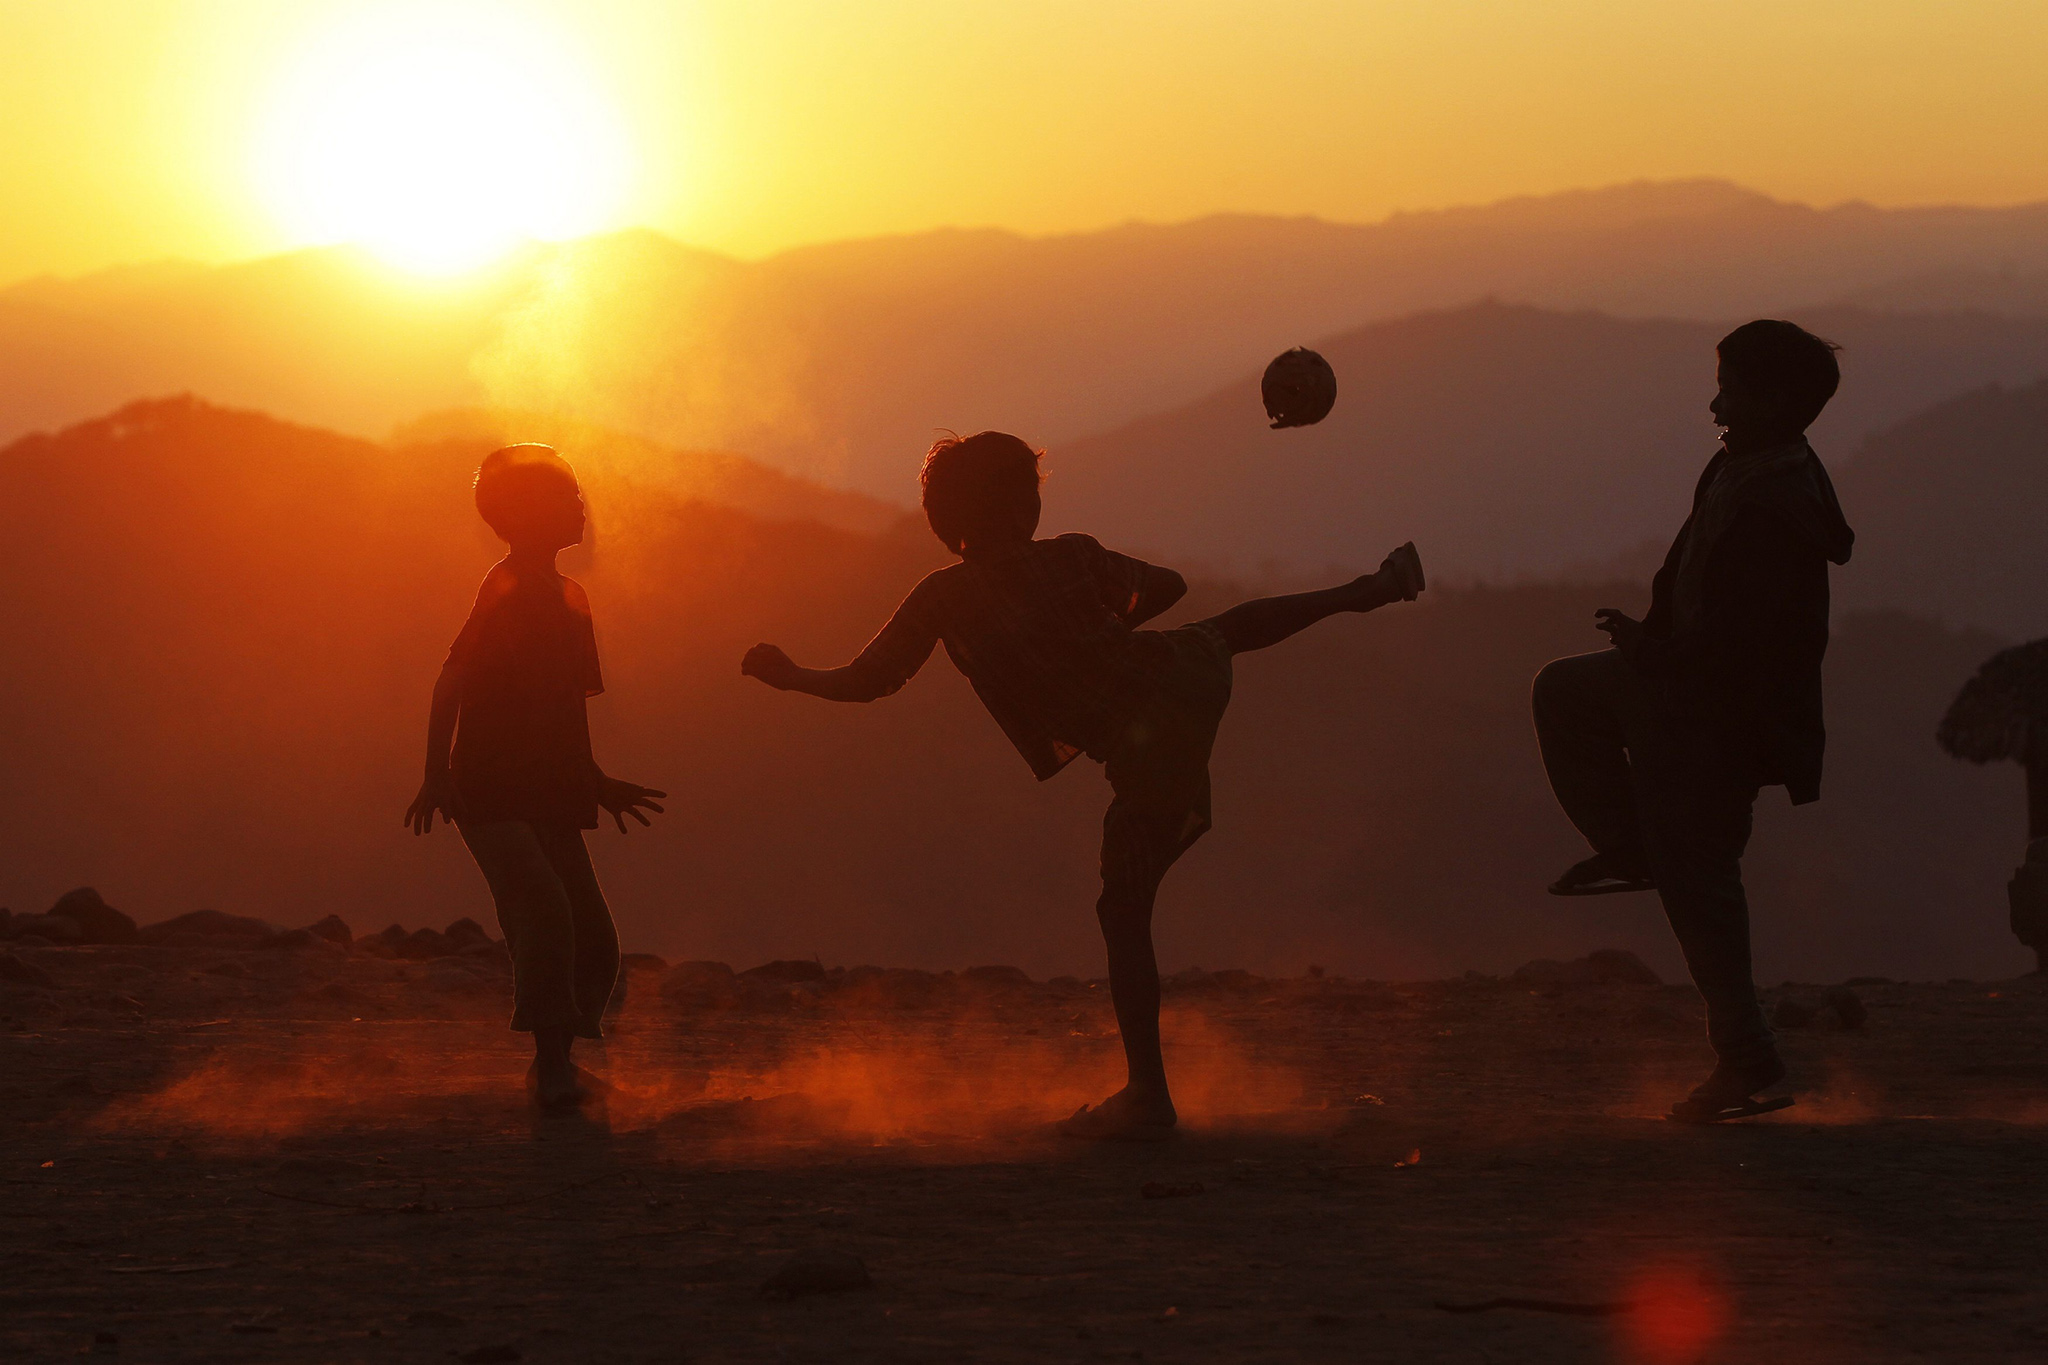 Boys play with a ball in Yansi village, Donhe township in the Naga Self-Administered Zone...Boys play with a ball at sunset in Yansi village, Donhe township in the Naga Self-Administered Zone in northwest Myanmar December 25, 2014. On Myanmar's mountainous frontier with India live the Naga, a group of tribes historically known as warriors who kept the heads of enemies they killed. In Myanmar, around 120,000 people live in the Naga Self-Administered Zone in Sagaing Division where they survive mainly by subsistence farming and hunting. Cultural practices are changing - for example, younger men now wear trousers rather than traditional loincloths - although many Naga communities remain impoverished and inaccessible by road. The Naga speak dozens of languages and many of those in Myanmar use Burmese as a lingua franca. REUTERS/Soe Zeya Tun (MYANMAR - Tags: AGRICULTURE SOCIETY FOOD TPX IMAGES OF THE DAY)     ATTENTION EDITORS: PICTURE 24 OF 24 FOR WIDER IMAGE PACKAGE 'HUNTING WITH MYANMAR'S NAGA'    SEARCH 'NAGA SOE ZEYA' FOR ALL IMAGES